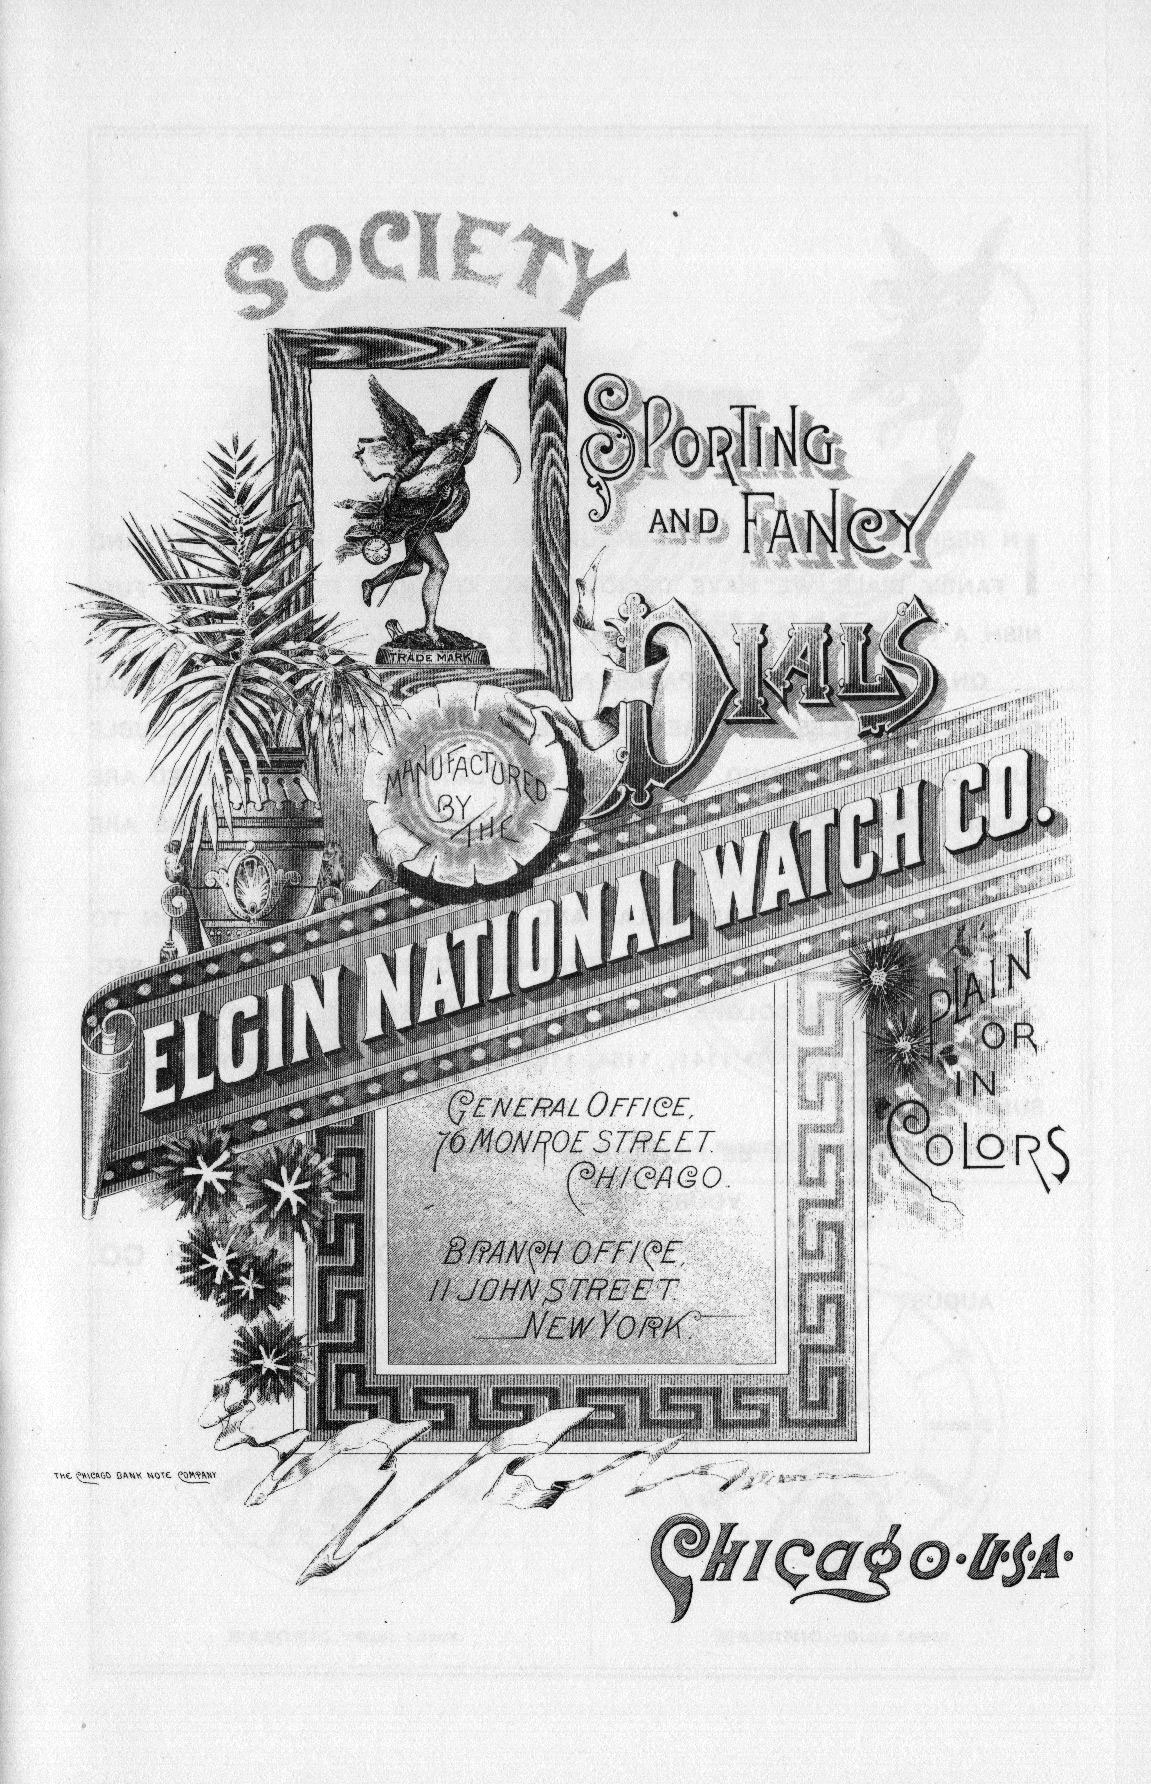 Society, Sporting & Fancy Dials Manufactured by the Elgin National Watch Co. Cover Image